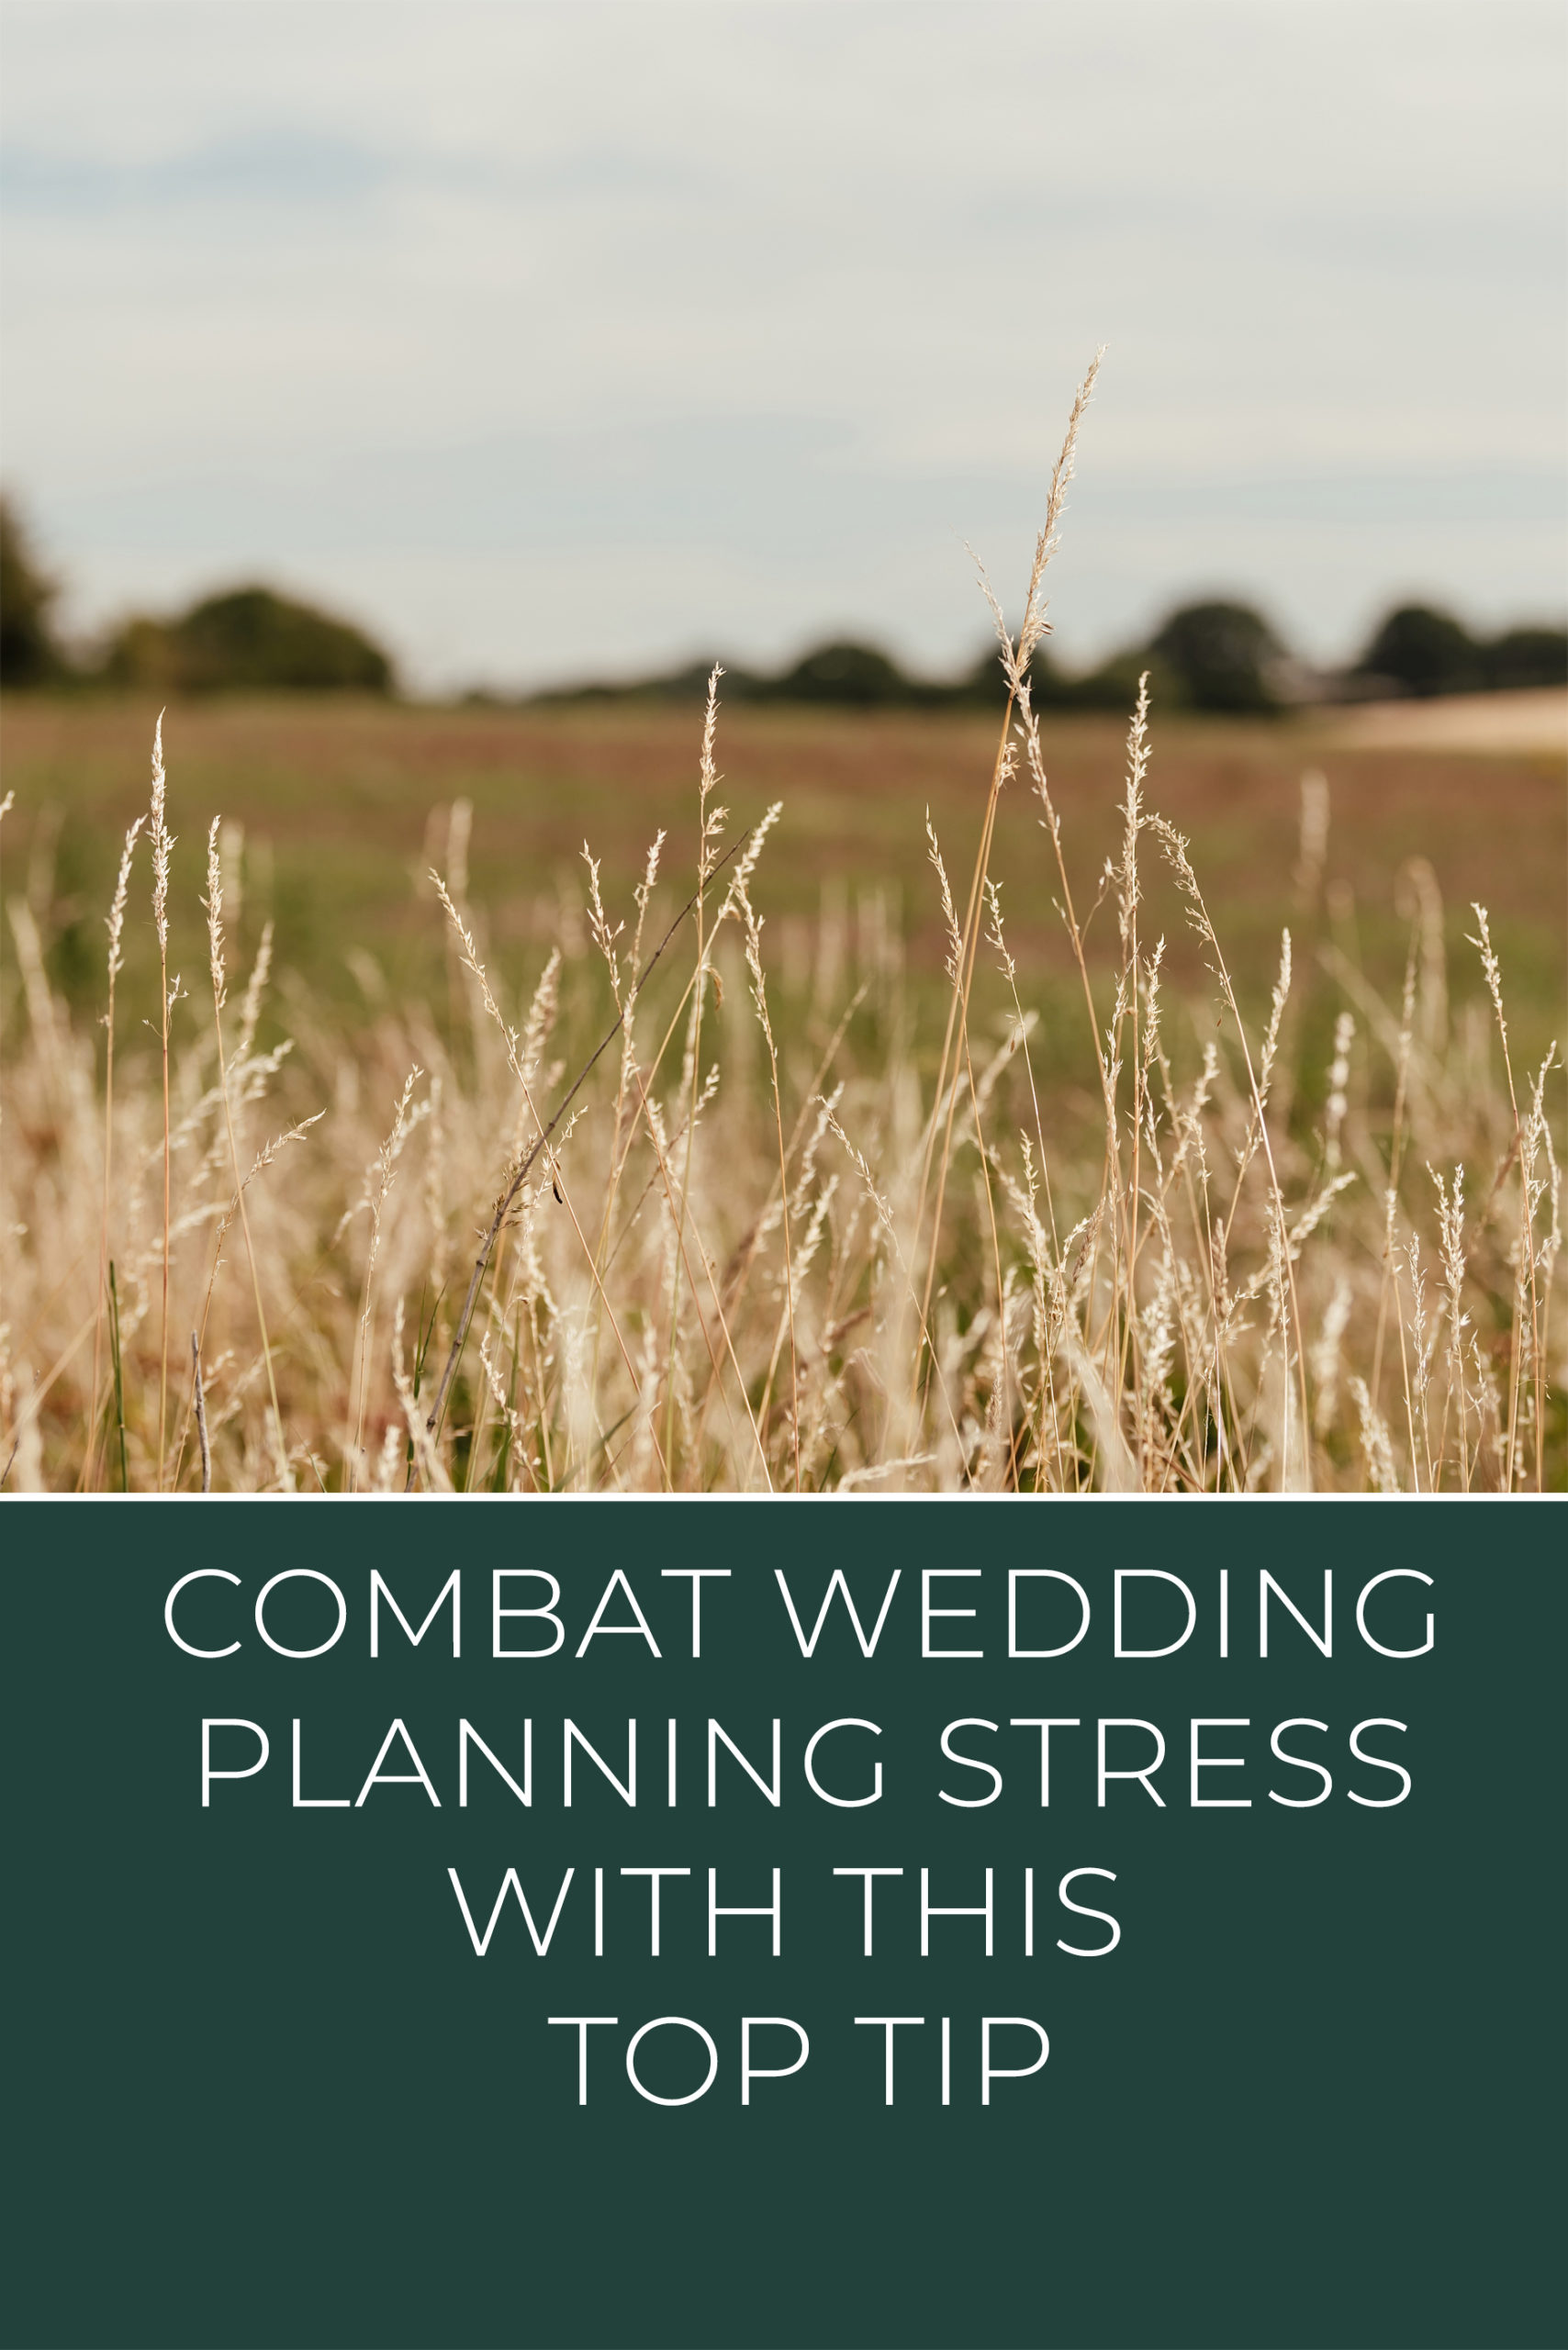 Combat Wedding Planning Stress with this Top Tip